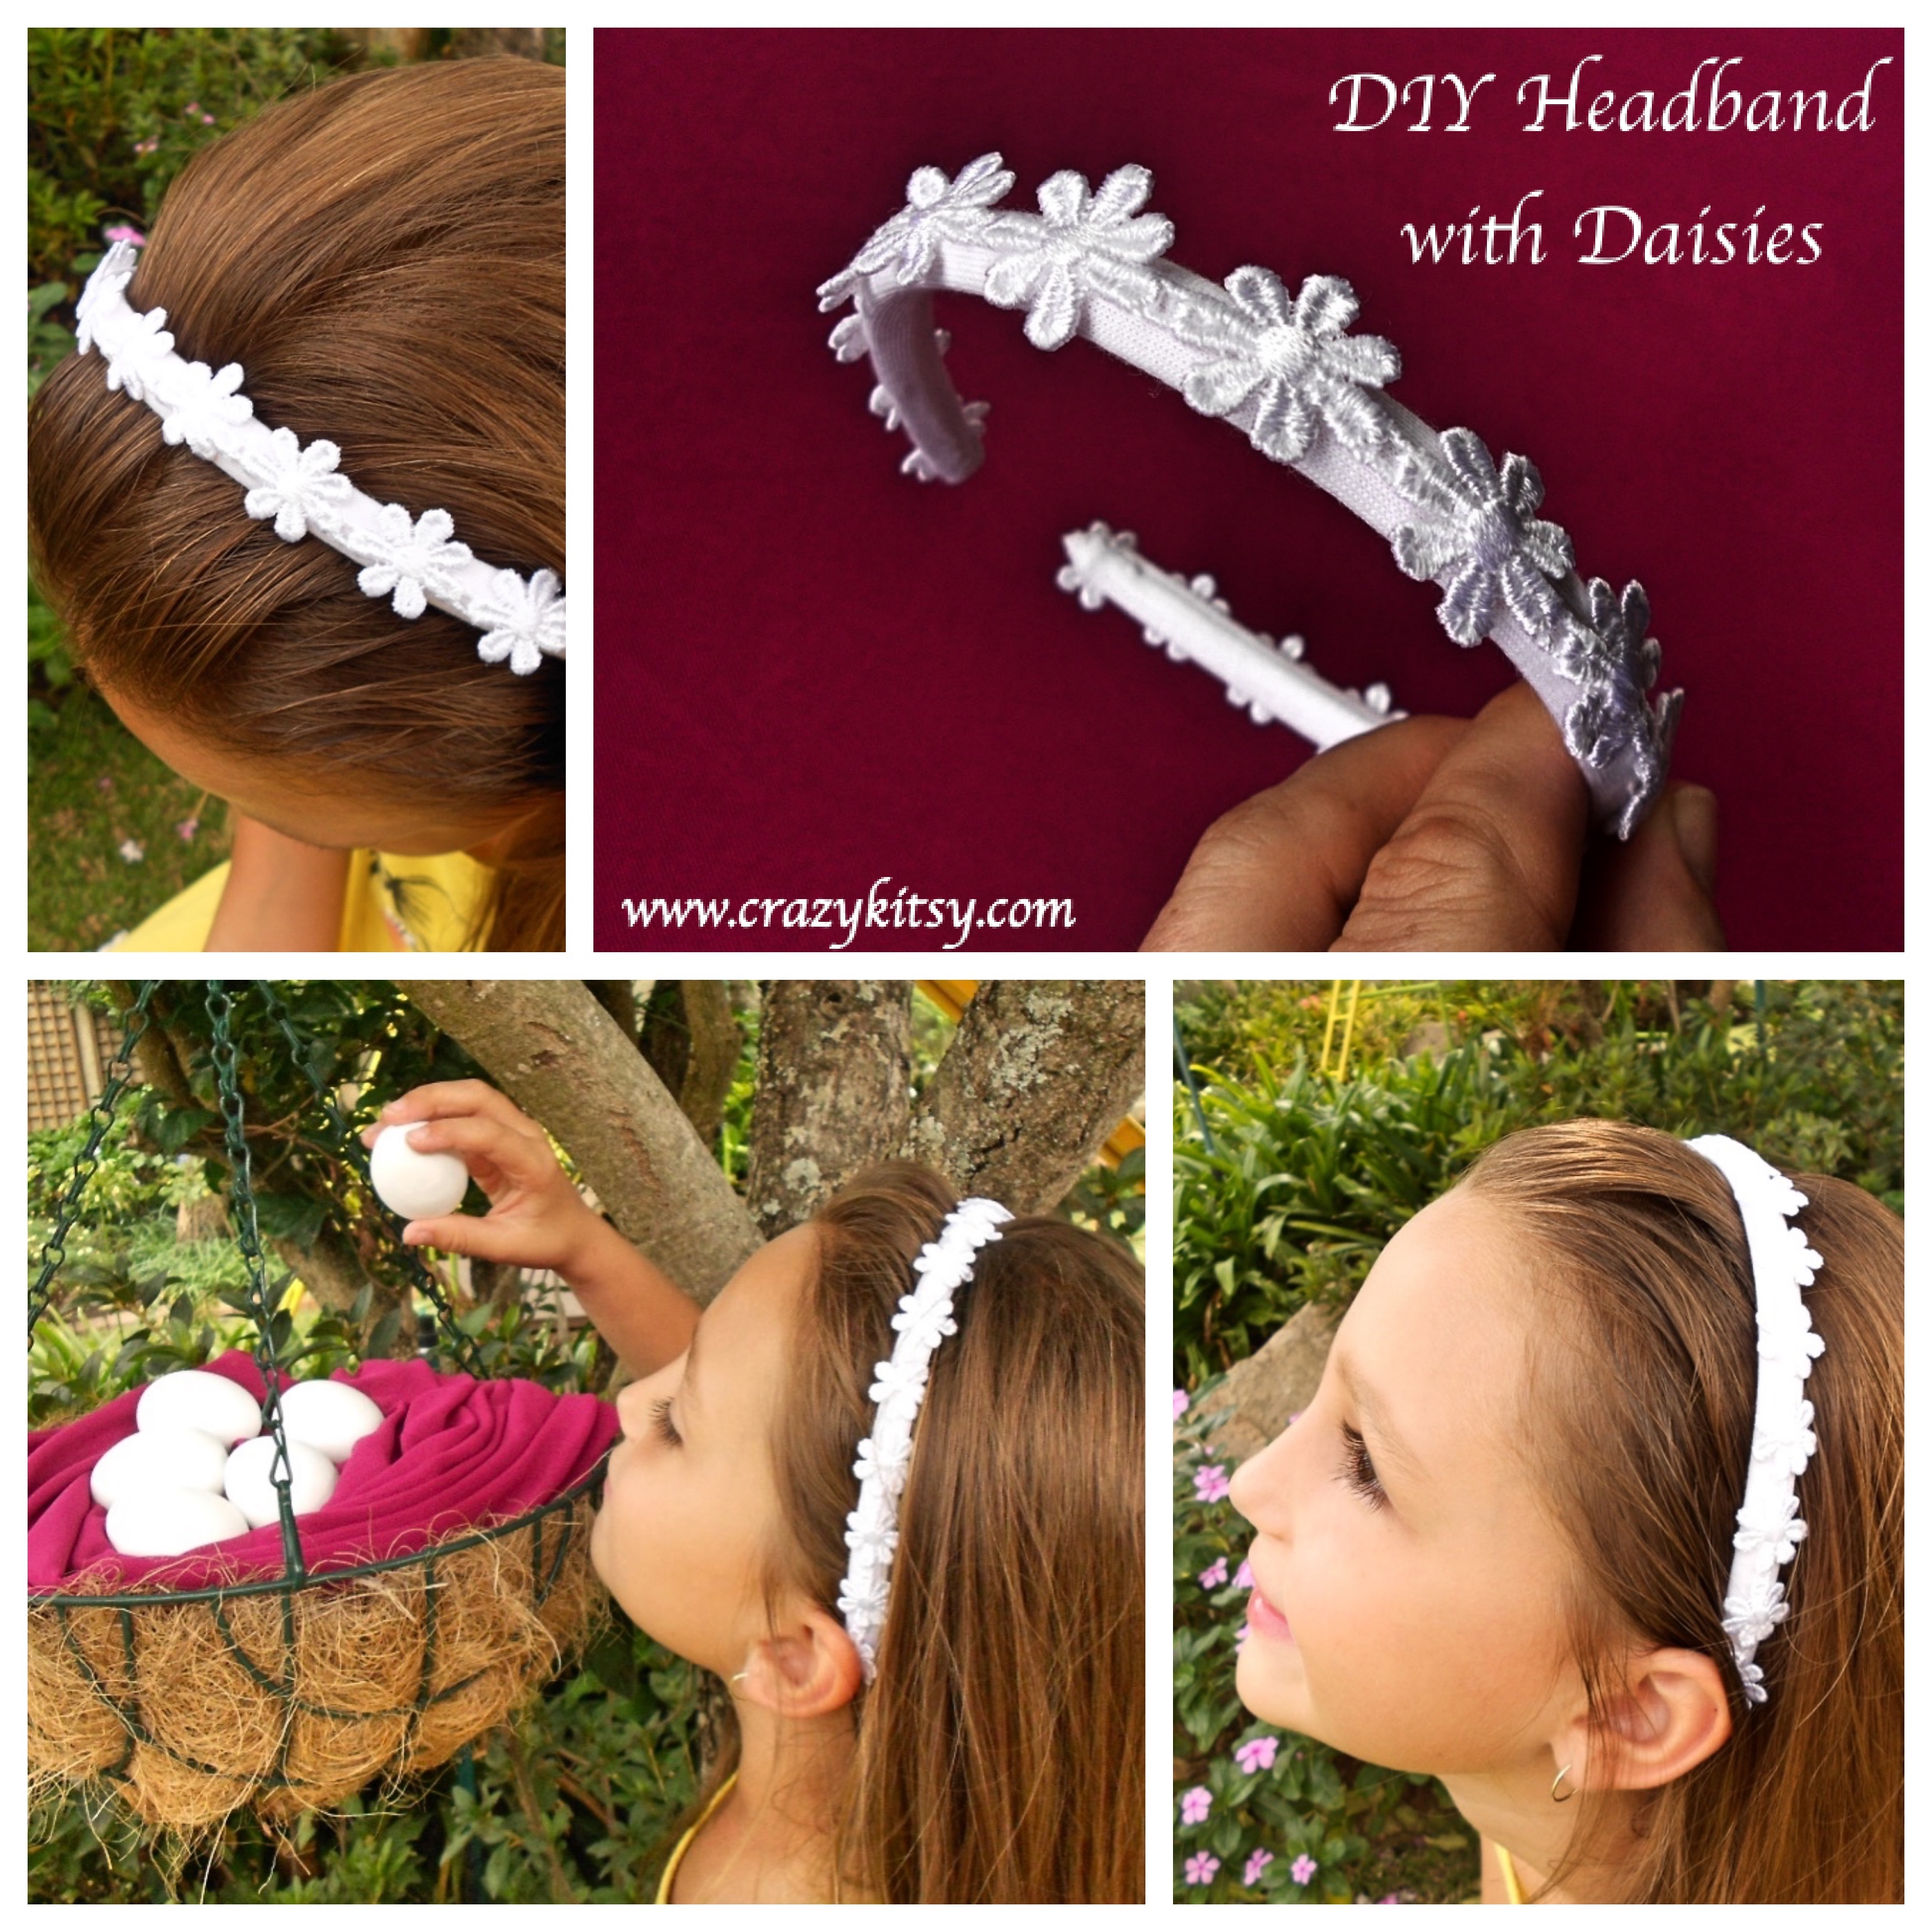 Daisy Headband Tutorial by Crazy Kitsy